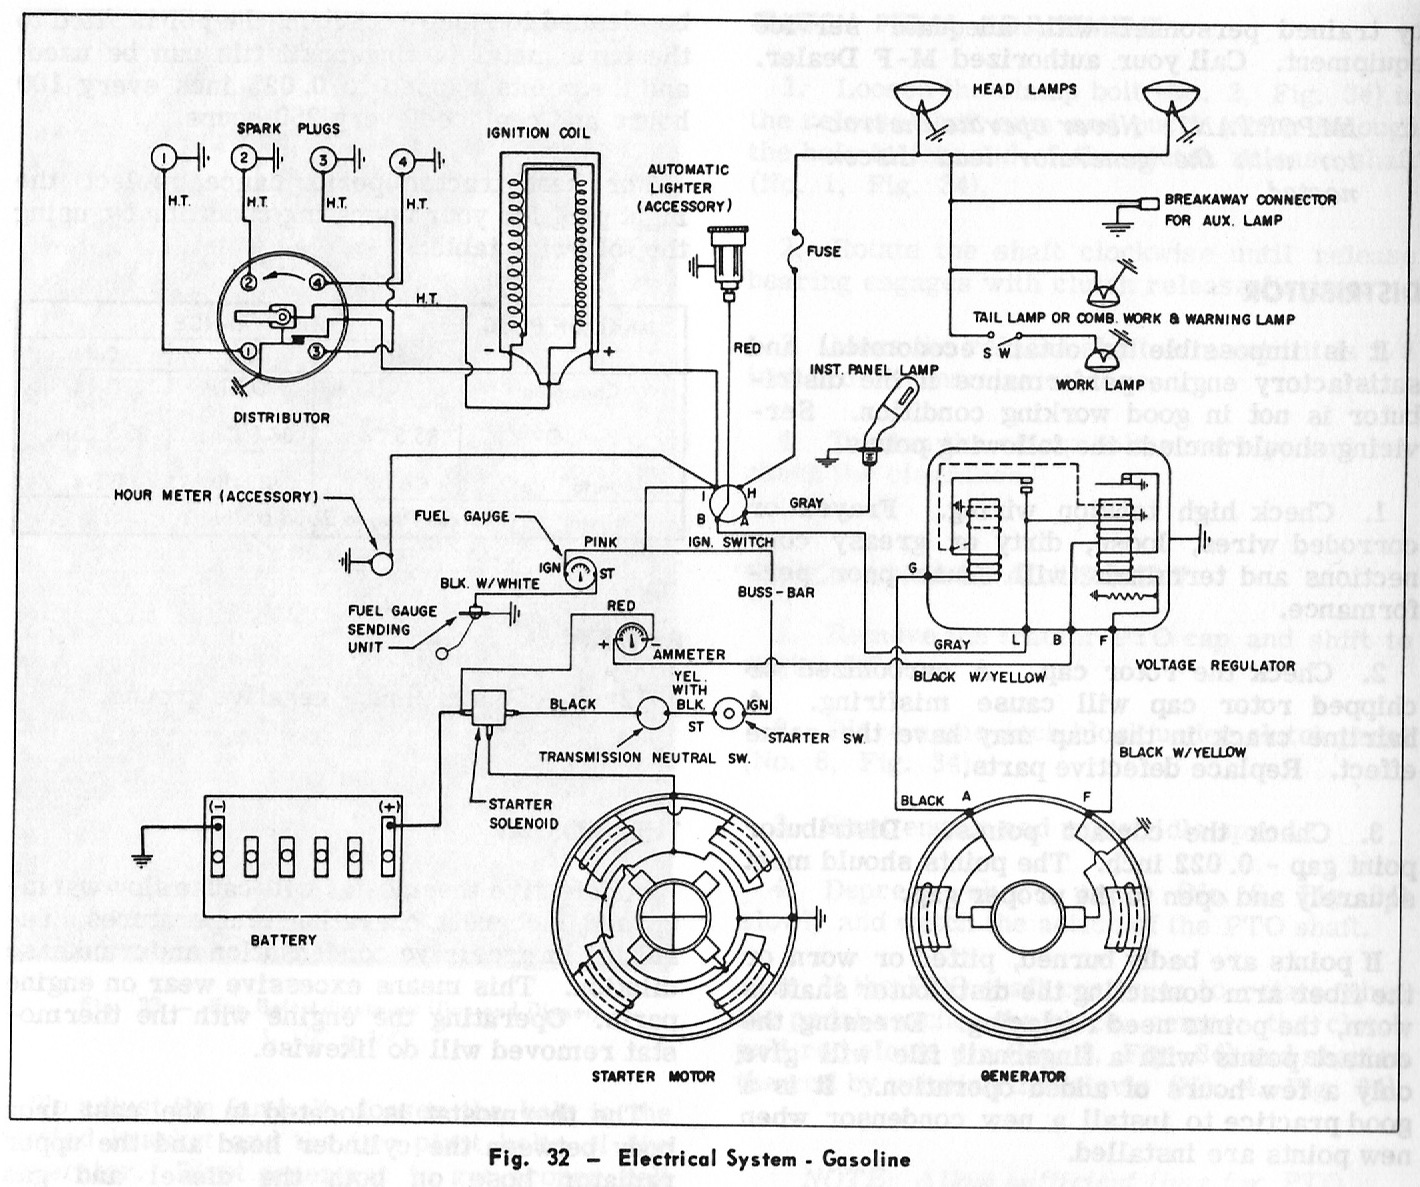 mf65 wiring diagram wiring diagram z1 massey ferguson 135 tractor wiring diagram mf 65 wiring diagram [ 1420 x 1187 Pixel ]